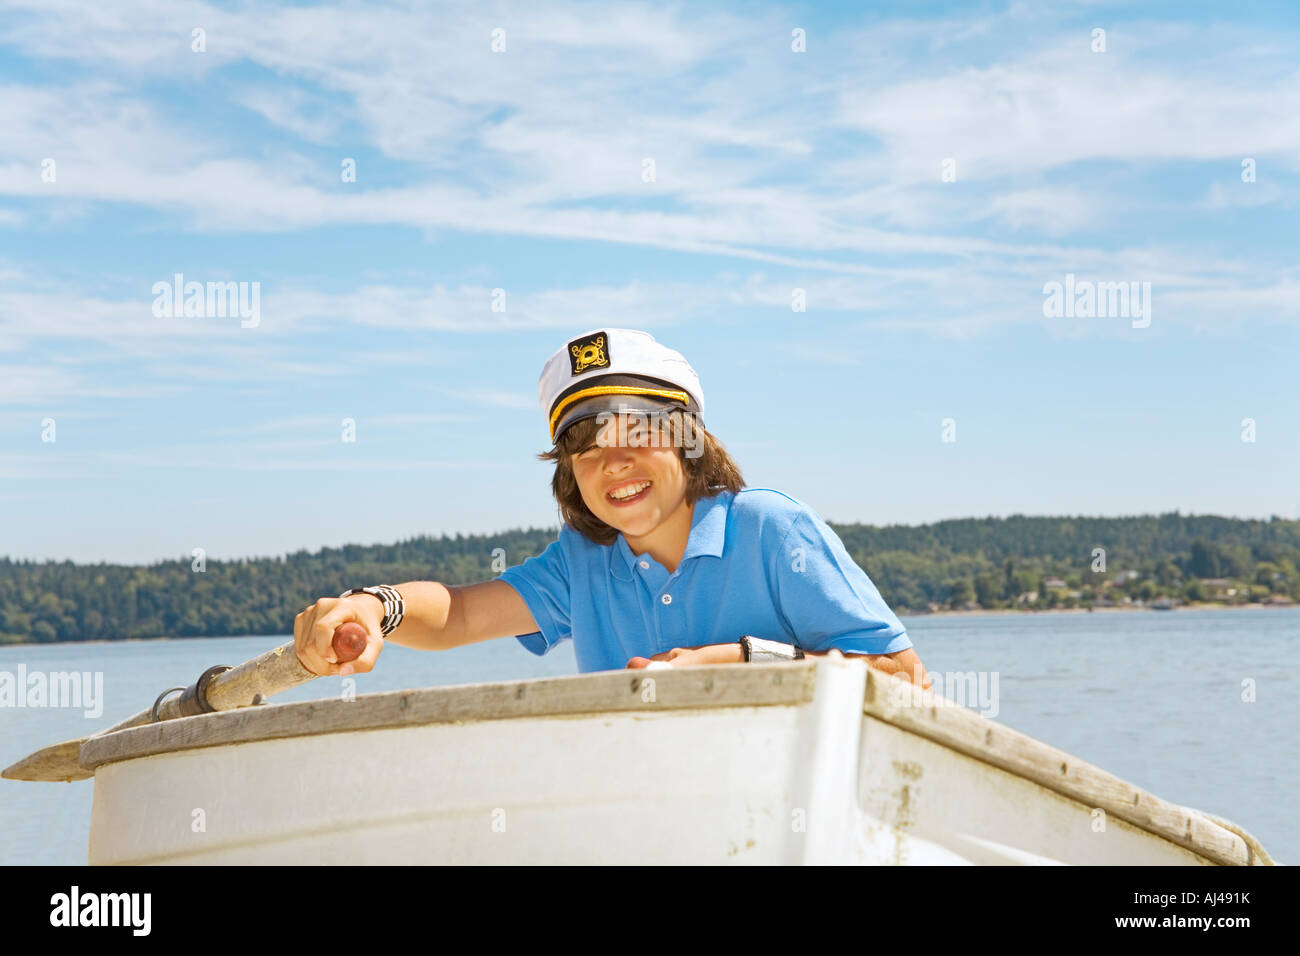 e2f64bad3 Captains Hat Stock Photos & Captains Hat Stock Images - Alamy